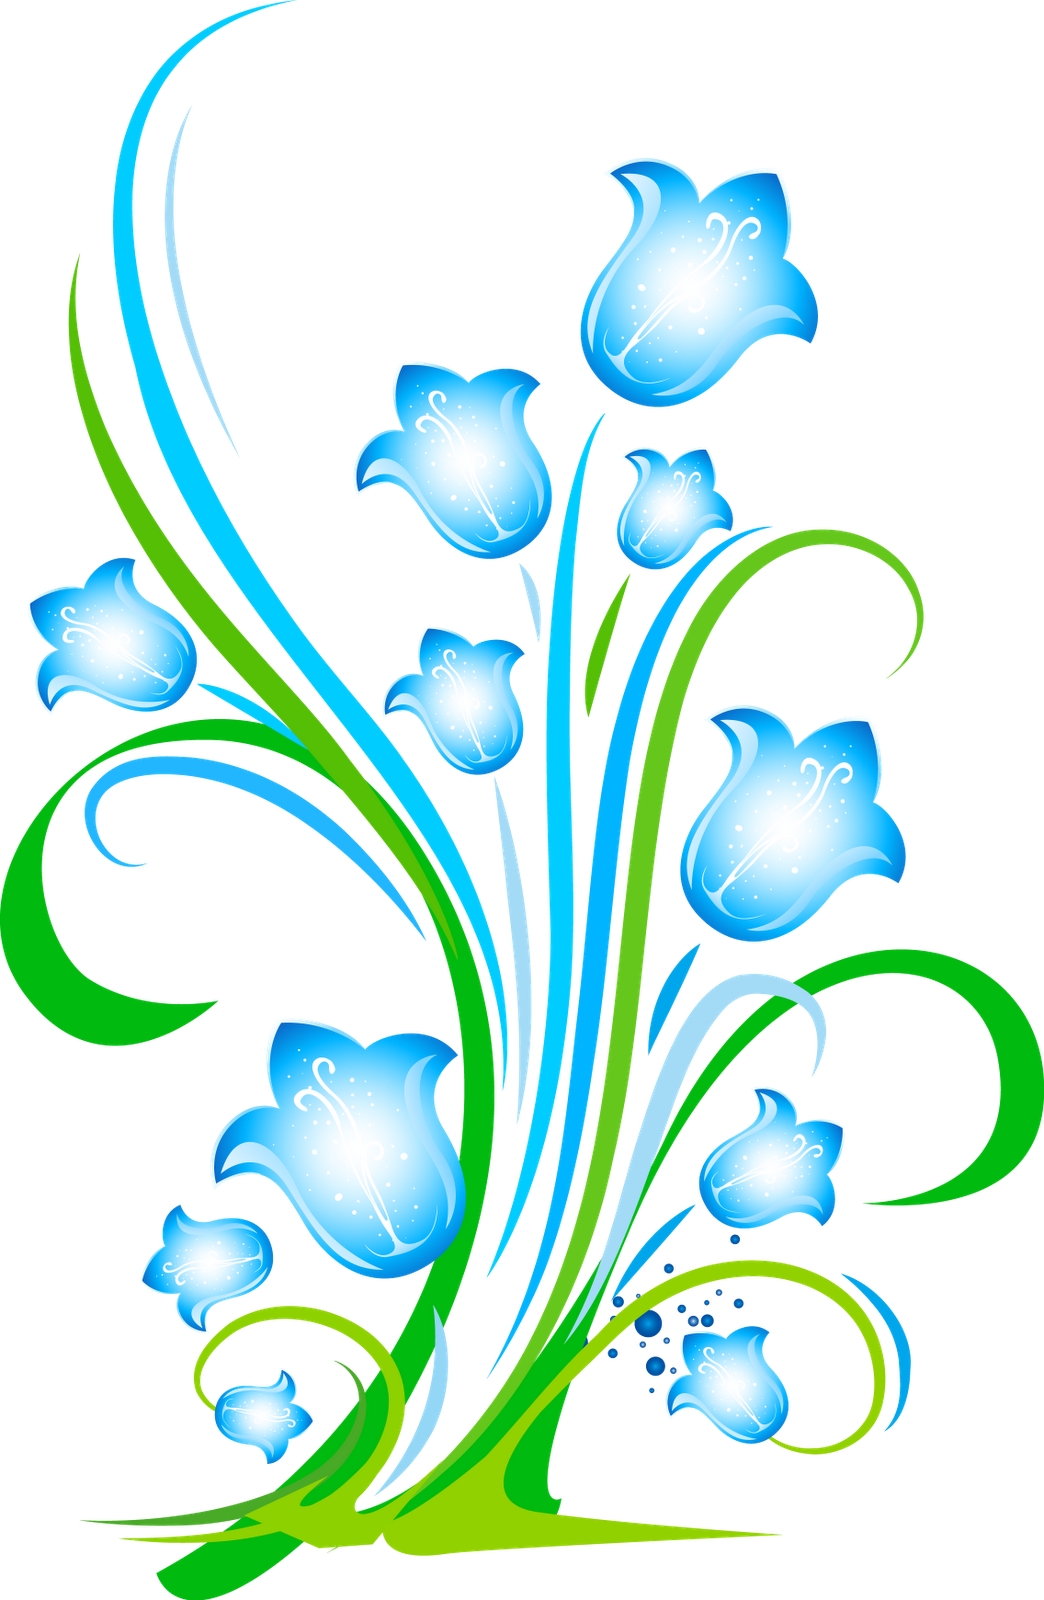 Flower png vector. Adobe photoshop floral http